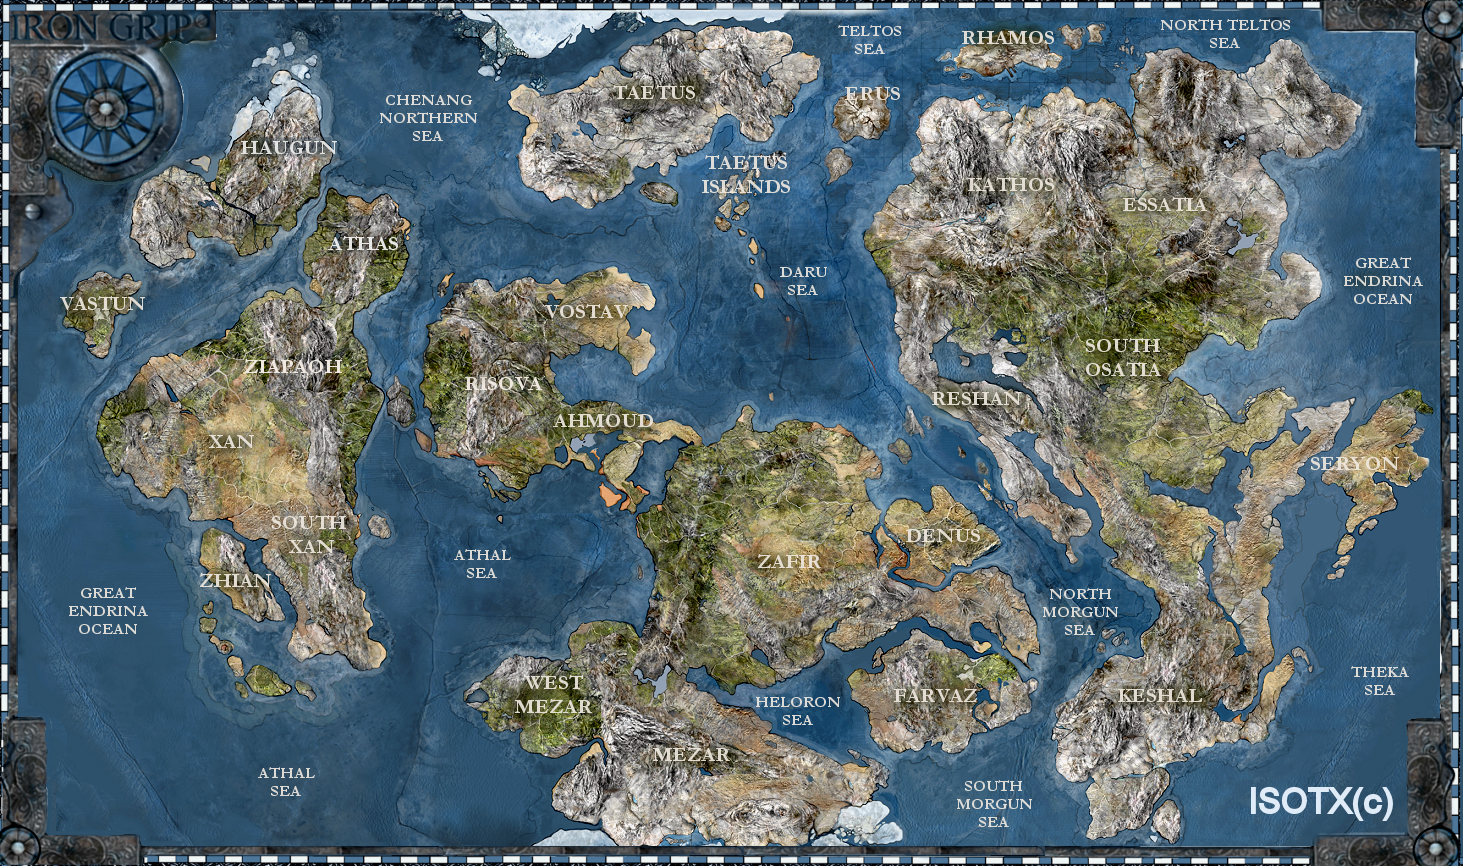 Iron grip world map by monkey paw on deviantart iron grip world map by monkey paw gumiabroncs Choice Image